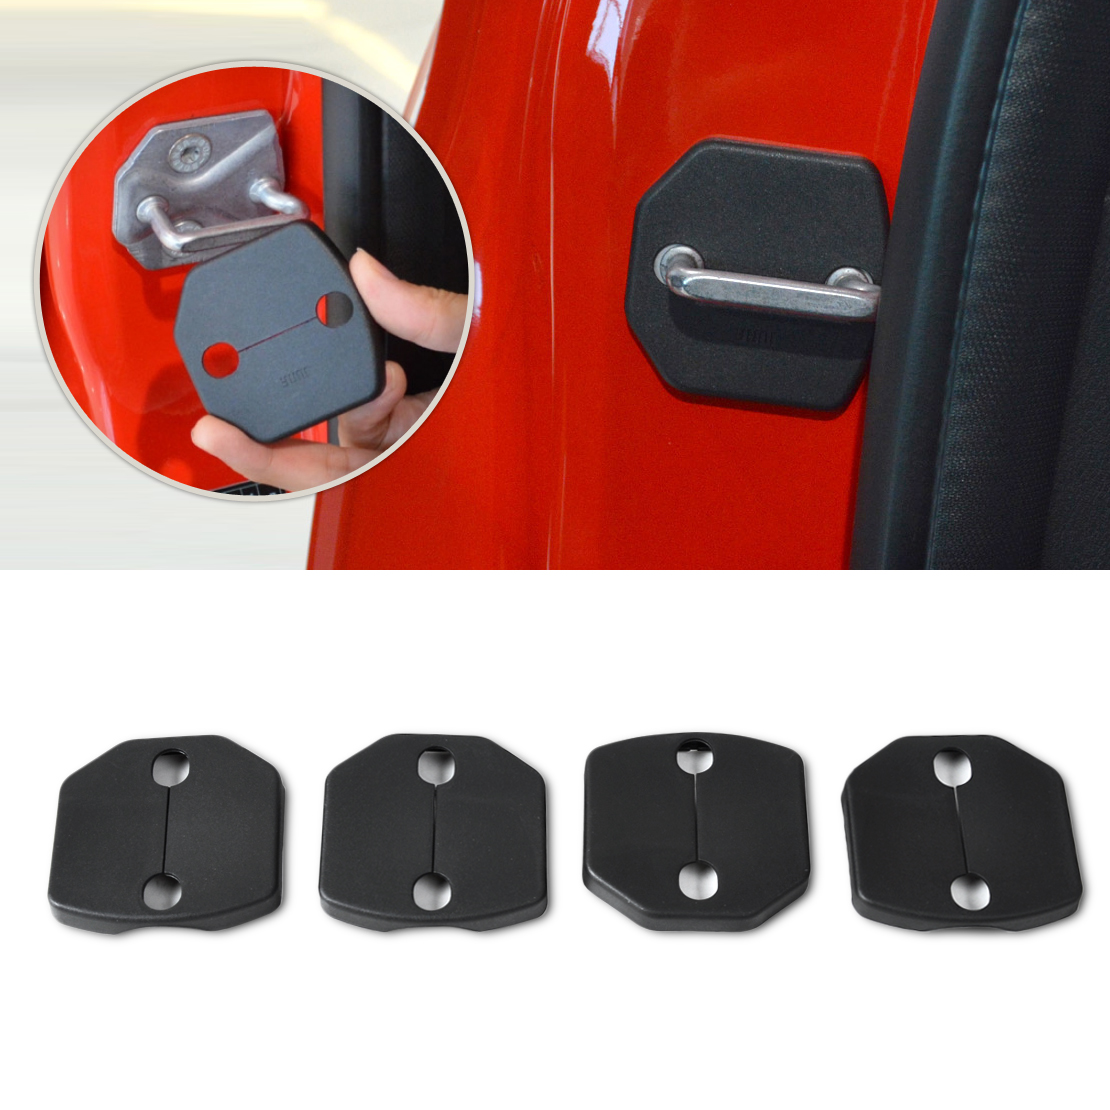 DWCX 4x Car Door Striker Cover Lock Protector Case Fit For Ford Fiesta 2008 2009 2010 2011 2012 2013+ Focus 2011 2012 2013 2014+